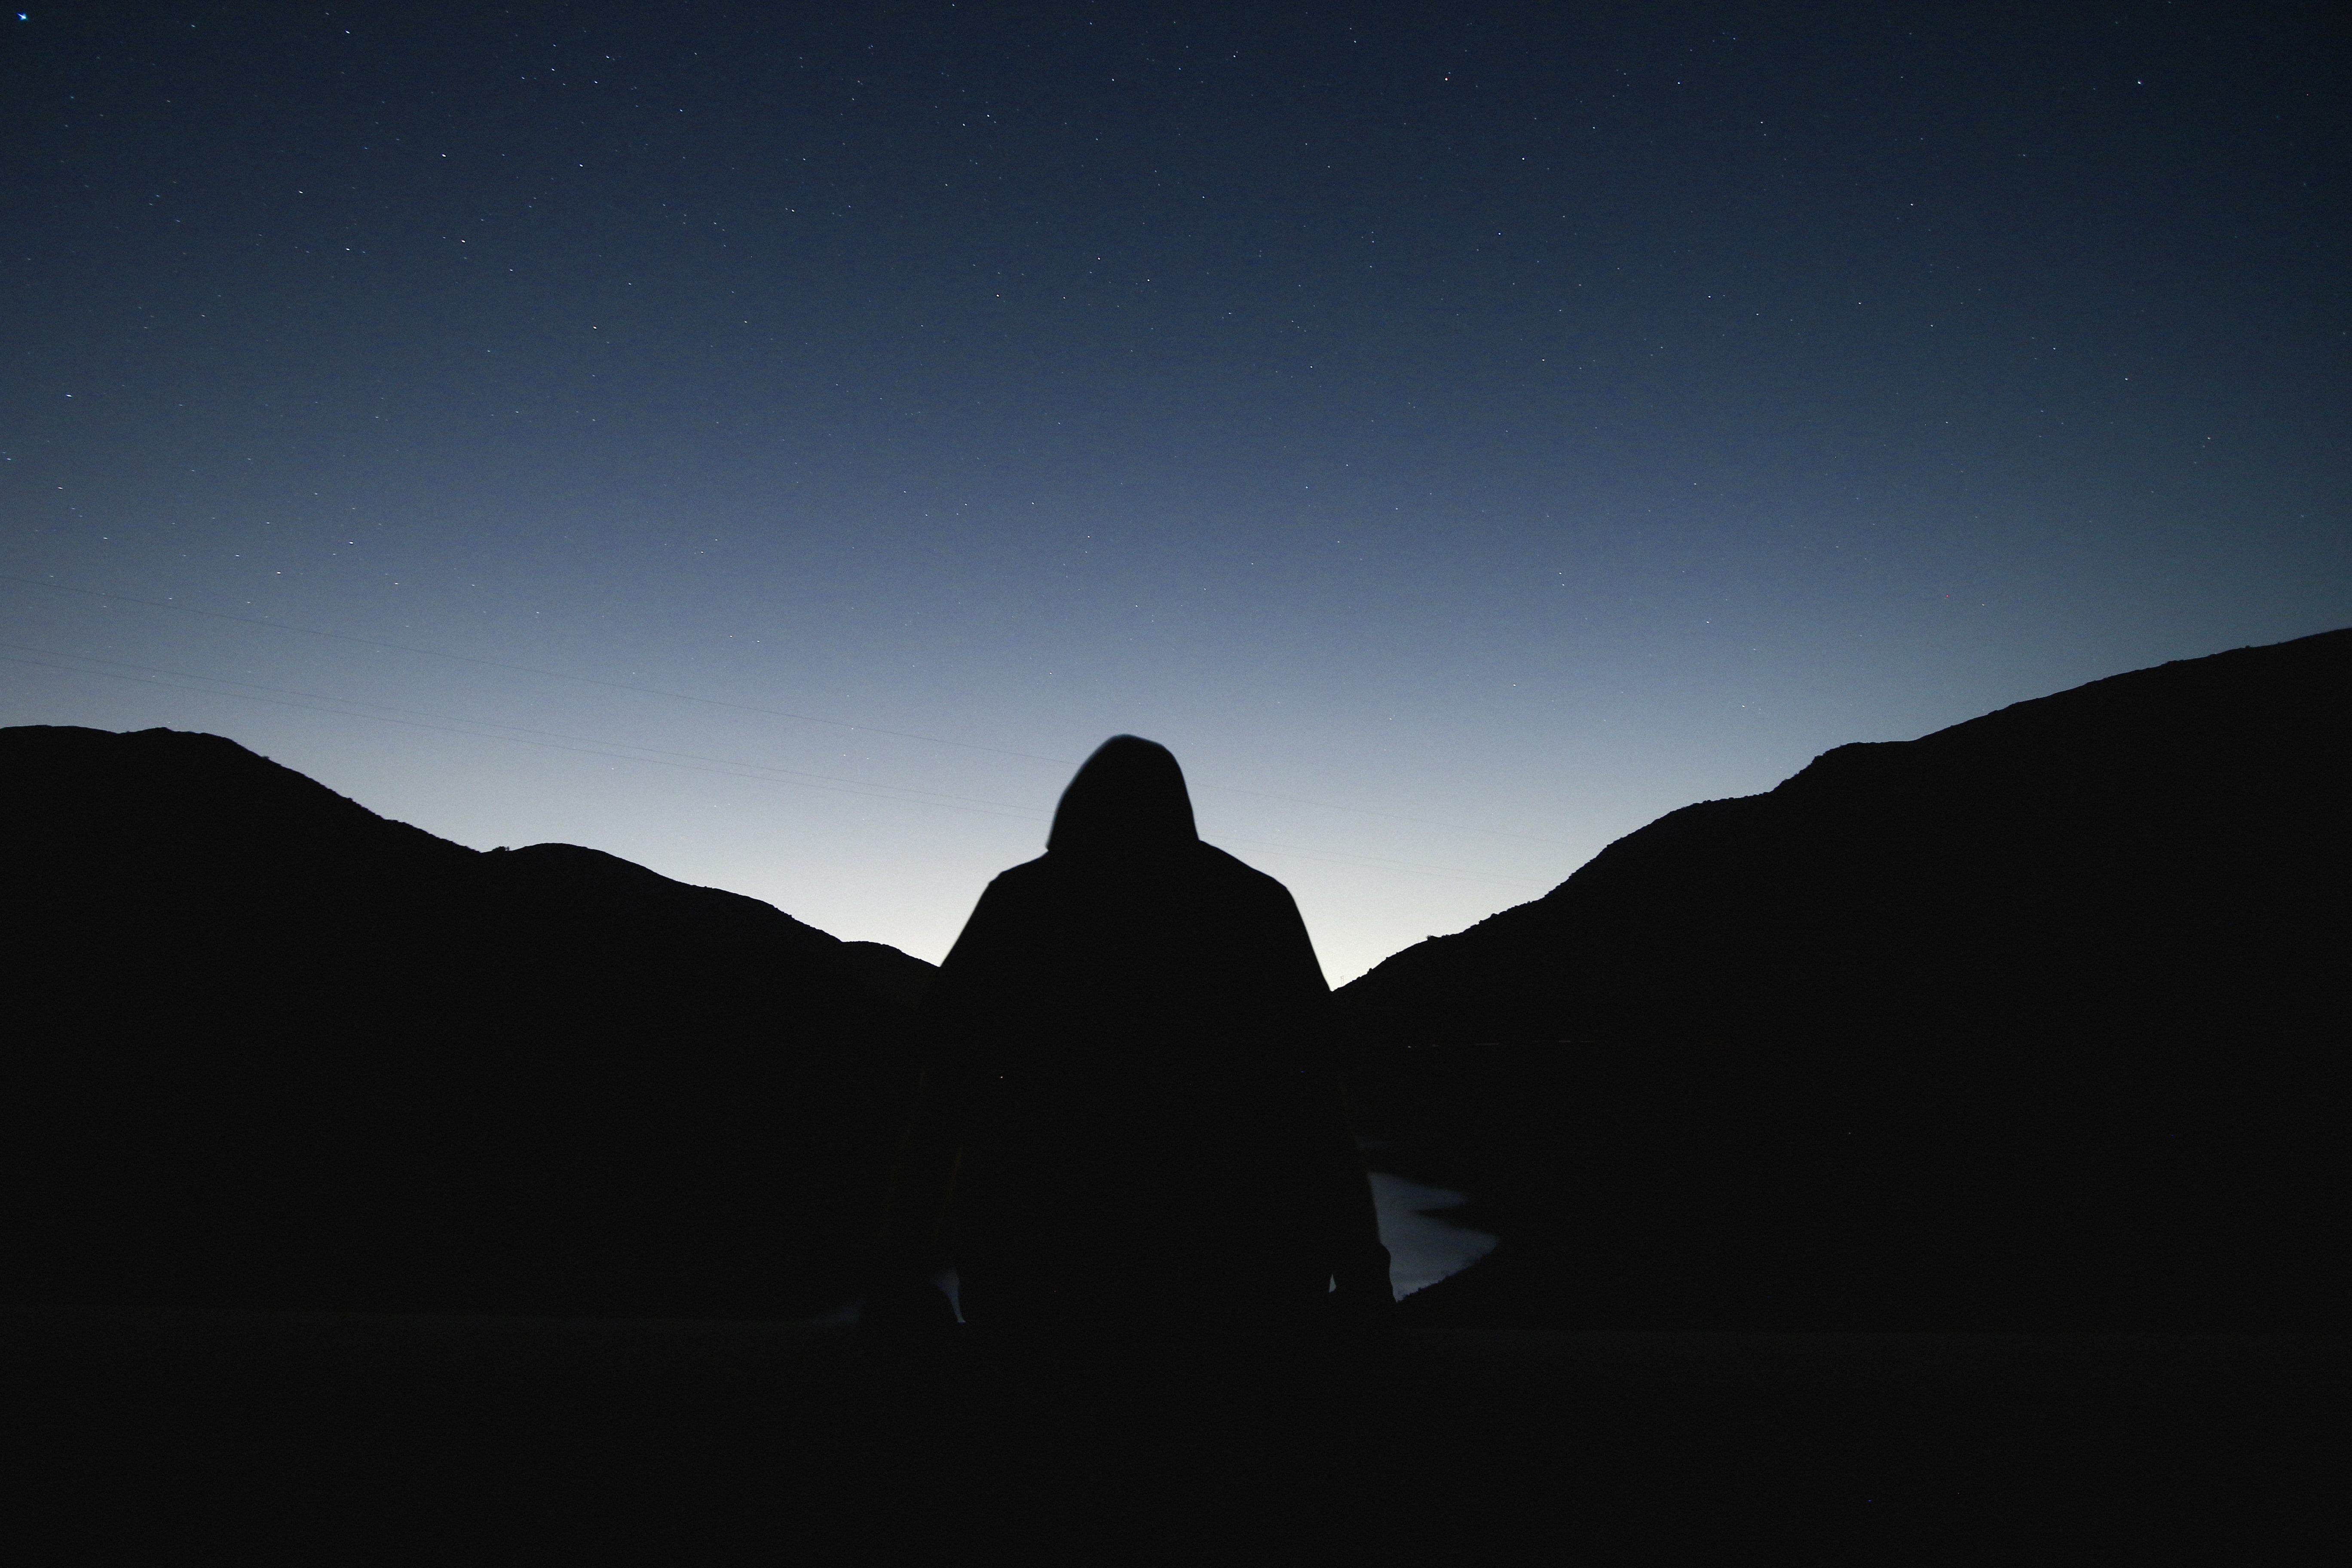 silhouette of a person facing sunrise